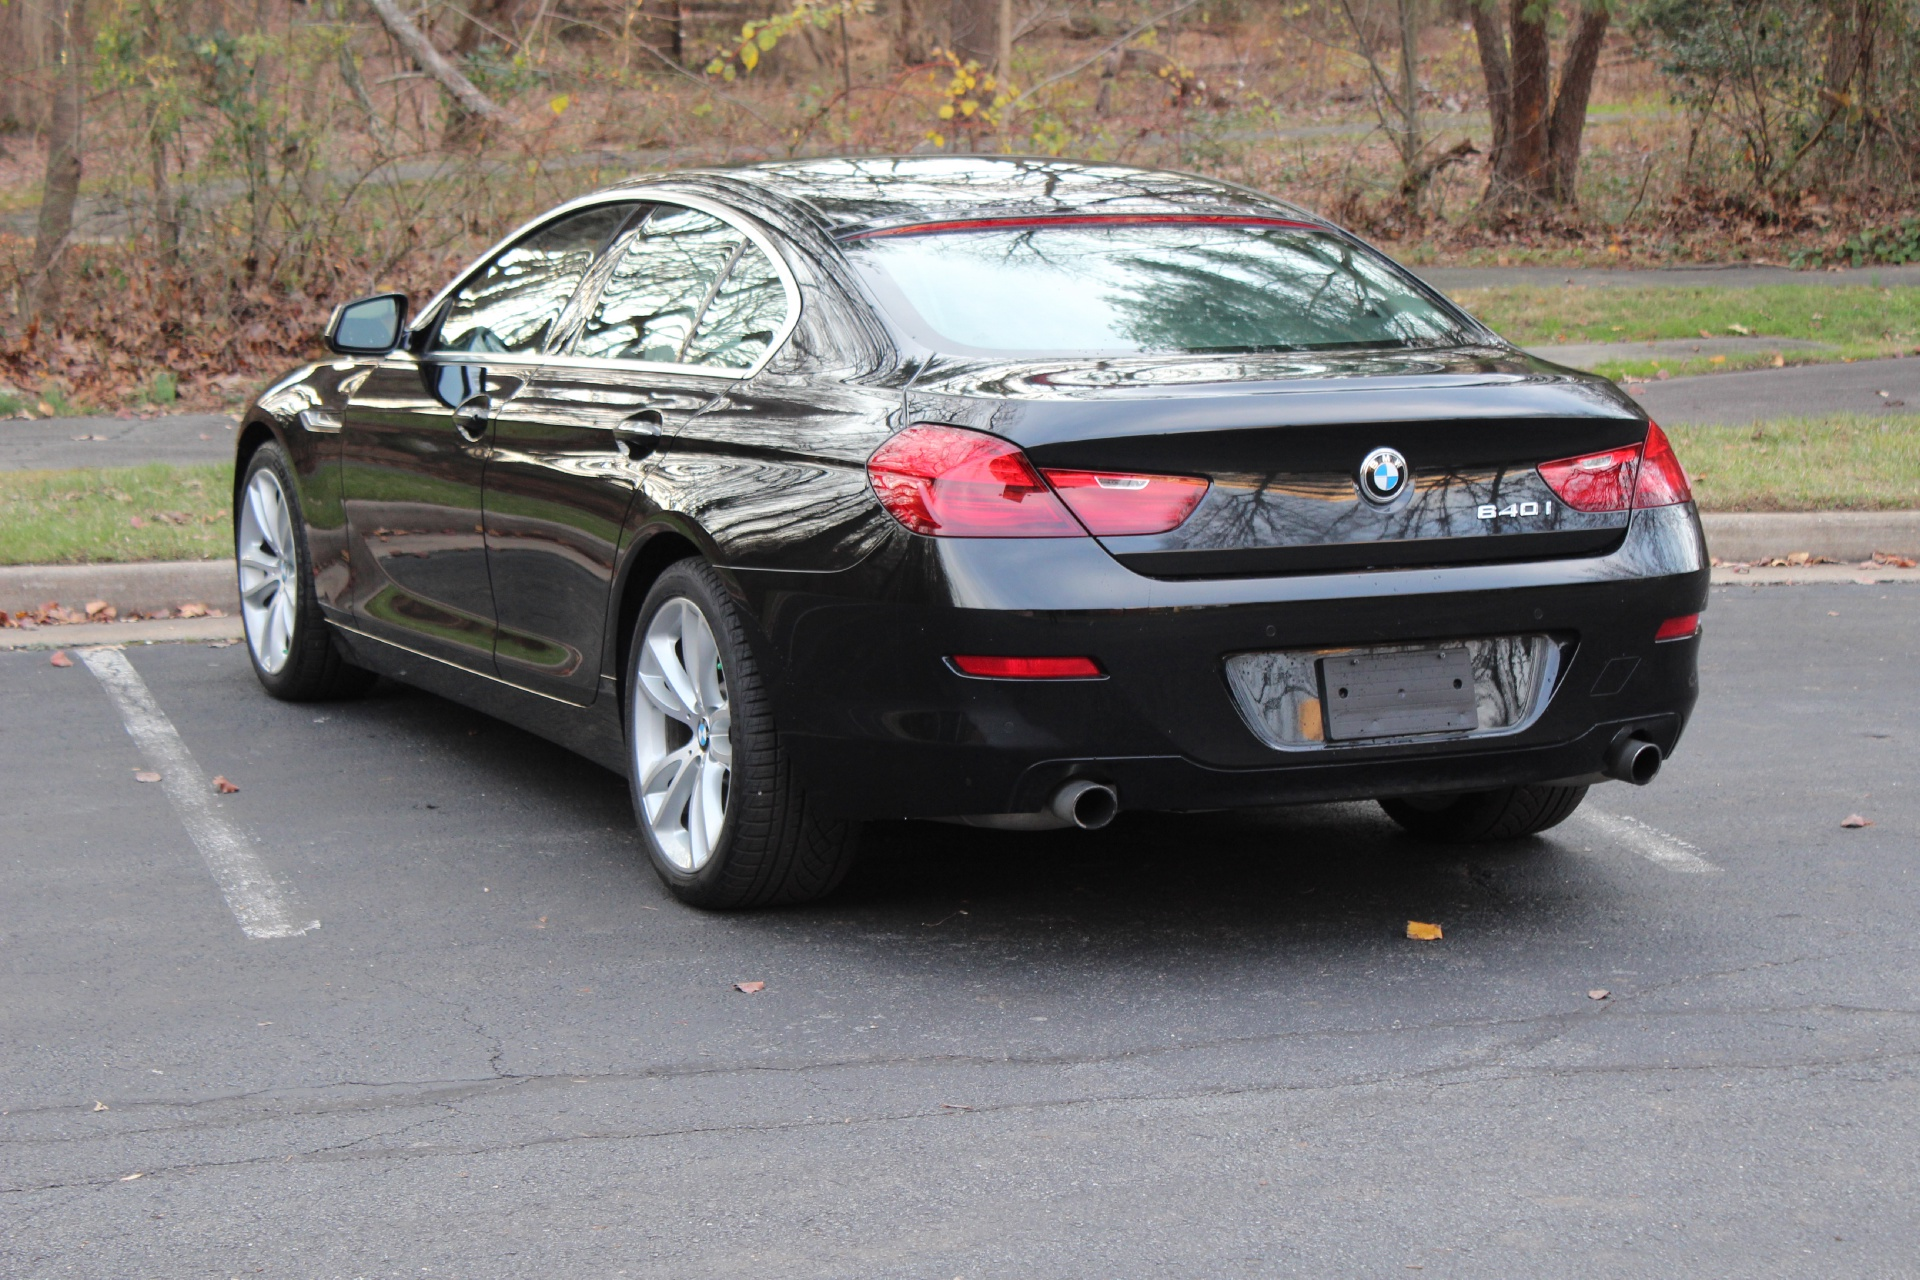 Bmw Extended Warranty >> 2013 BMW 640i 640i Gran Coupe Stock # PF14418 for sale near Vienna, VA | VA BMW Dealer For Sale ...